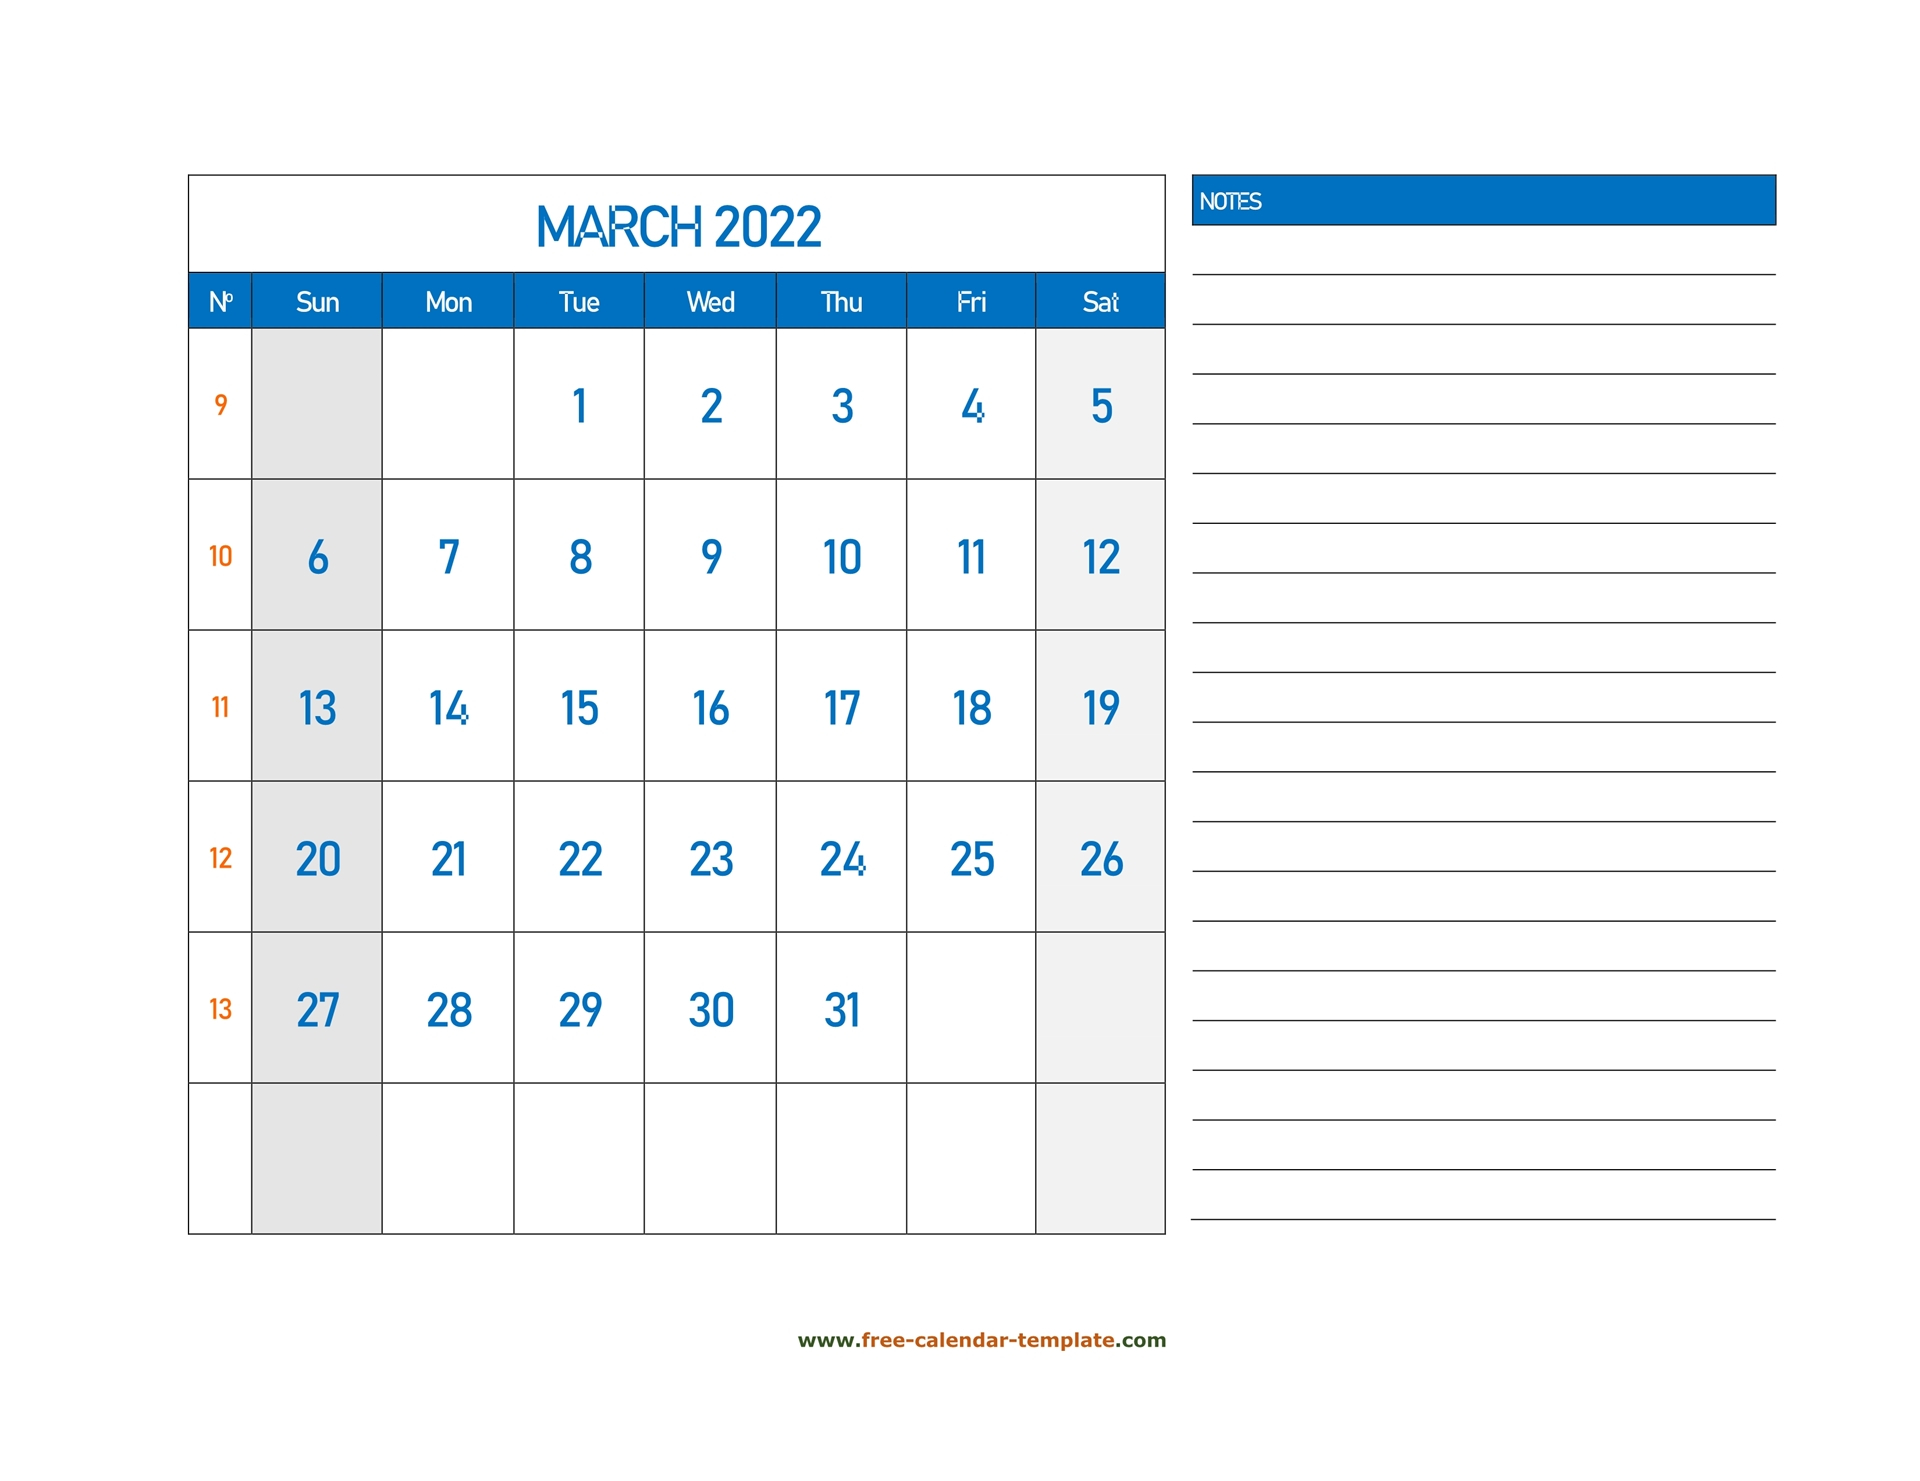 March Calendar 2022 Grid Lines For Holidays And Notes Intended For Caladar For The Mont Of March 2022